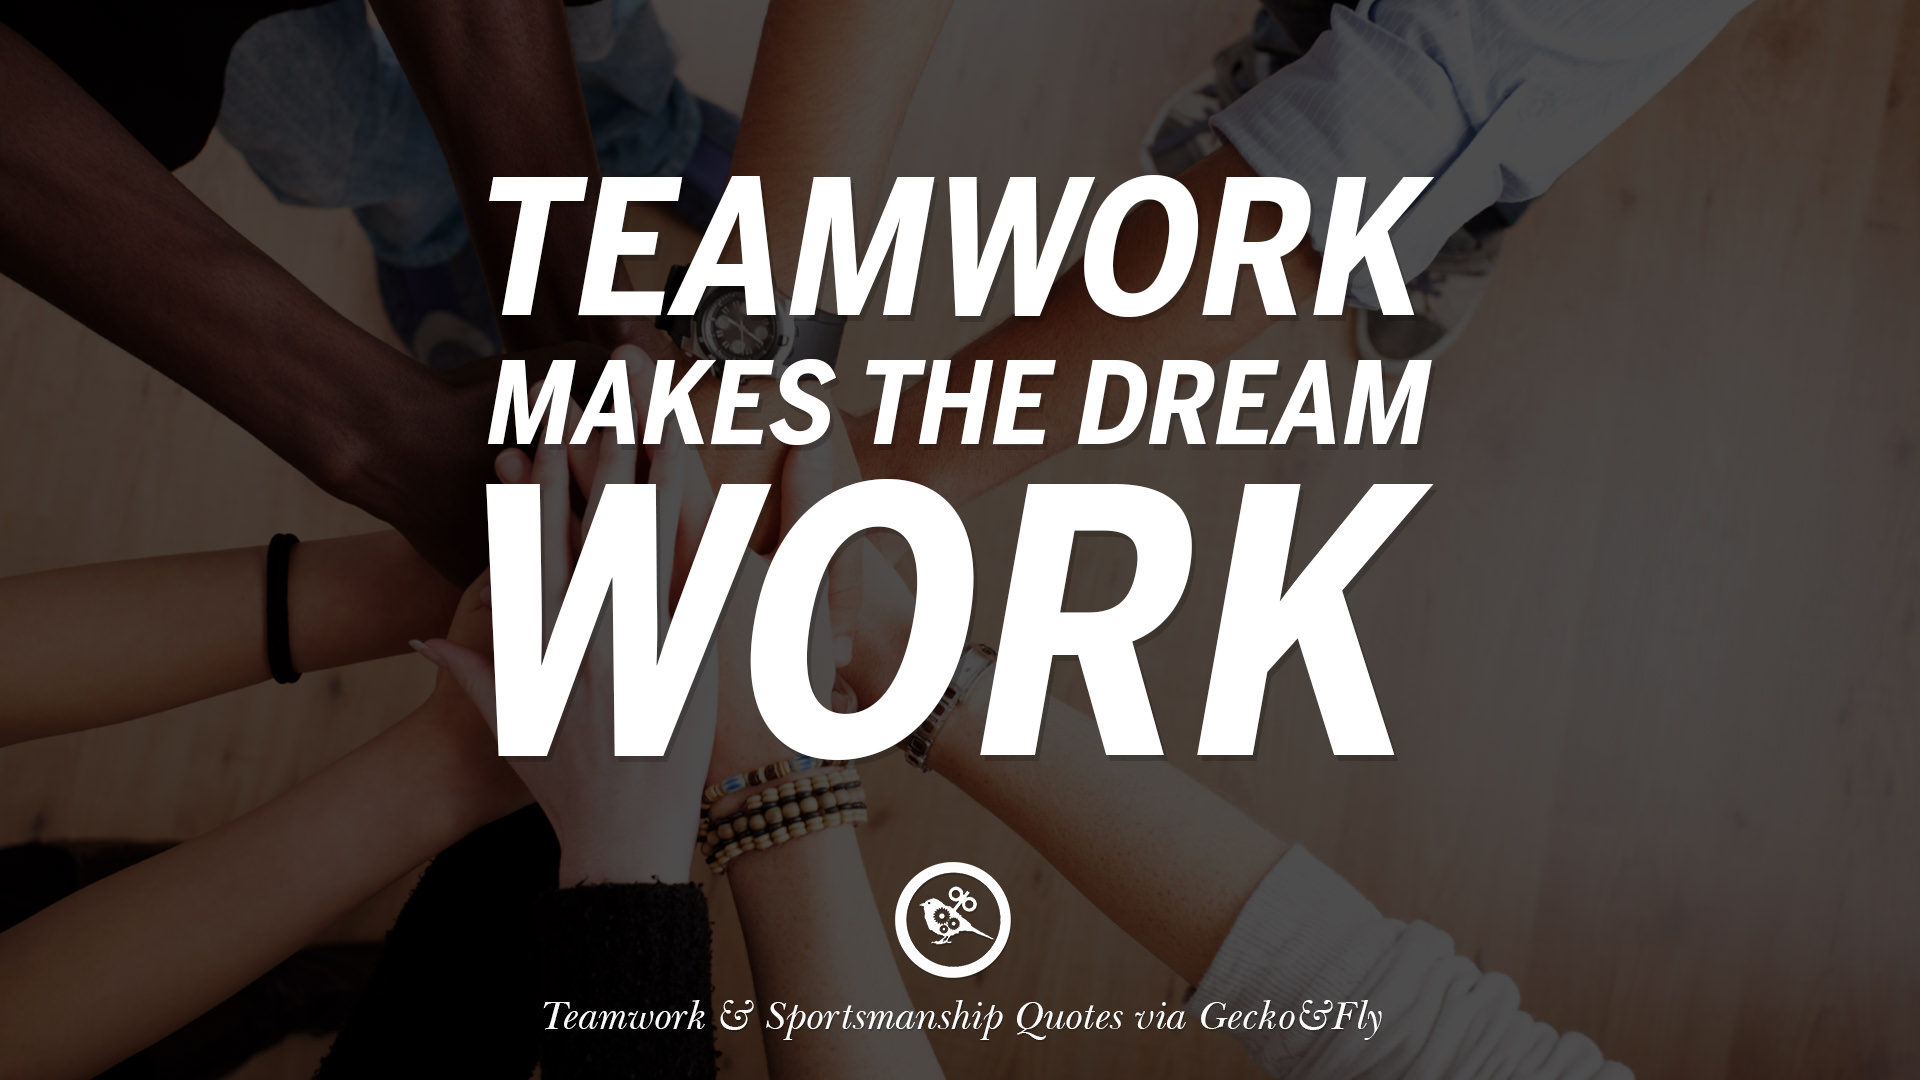 motivational quotes for work team professional resume cover motivational quotes for work team 15 quotes to inspire great teamwork inc team work sports saying